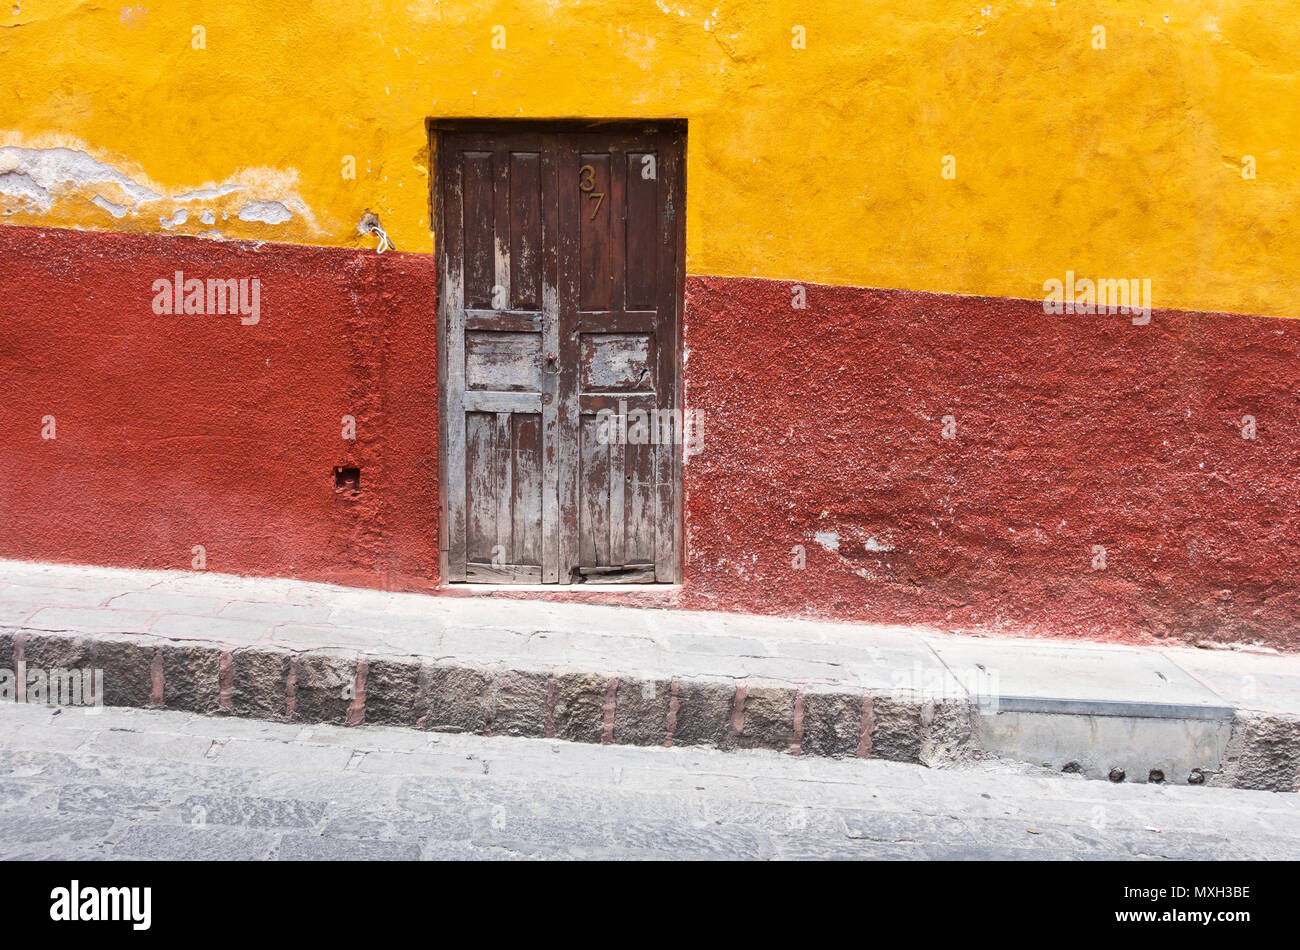 The hills of the city center of San Miguel de Allende - Stock Image